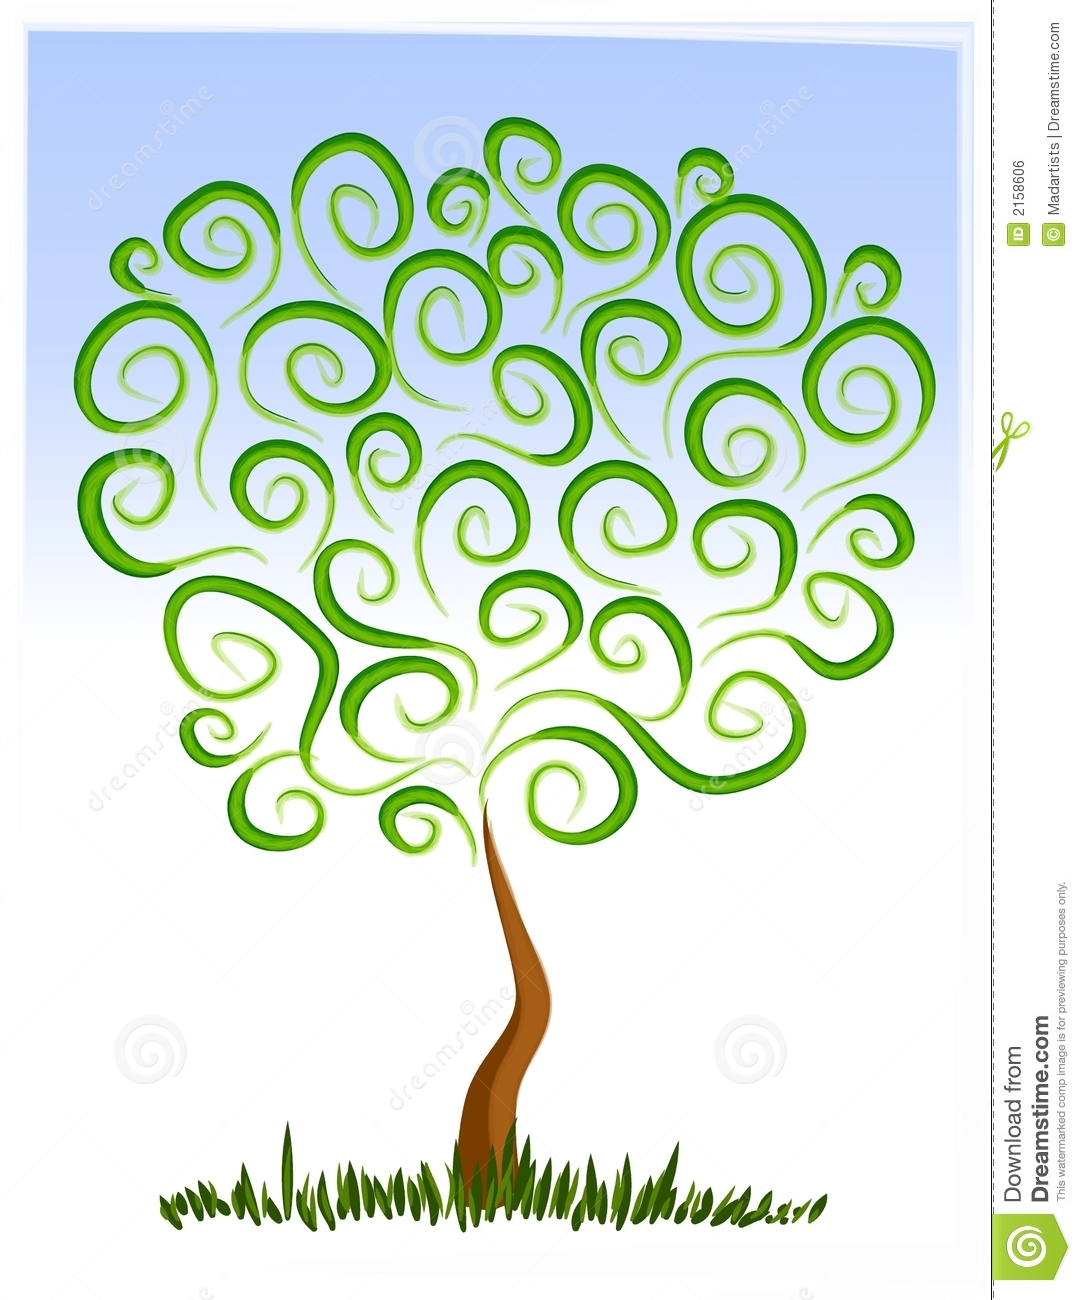 Artistic tree clipart clipart transparent library Artistic tree clipart - ClipartFest clipart transparent library